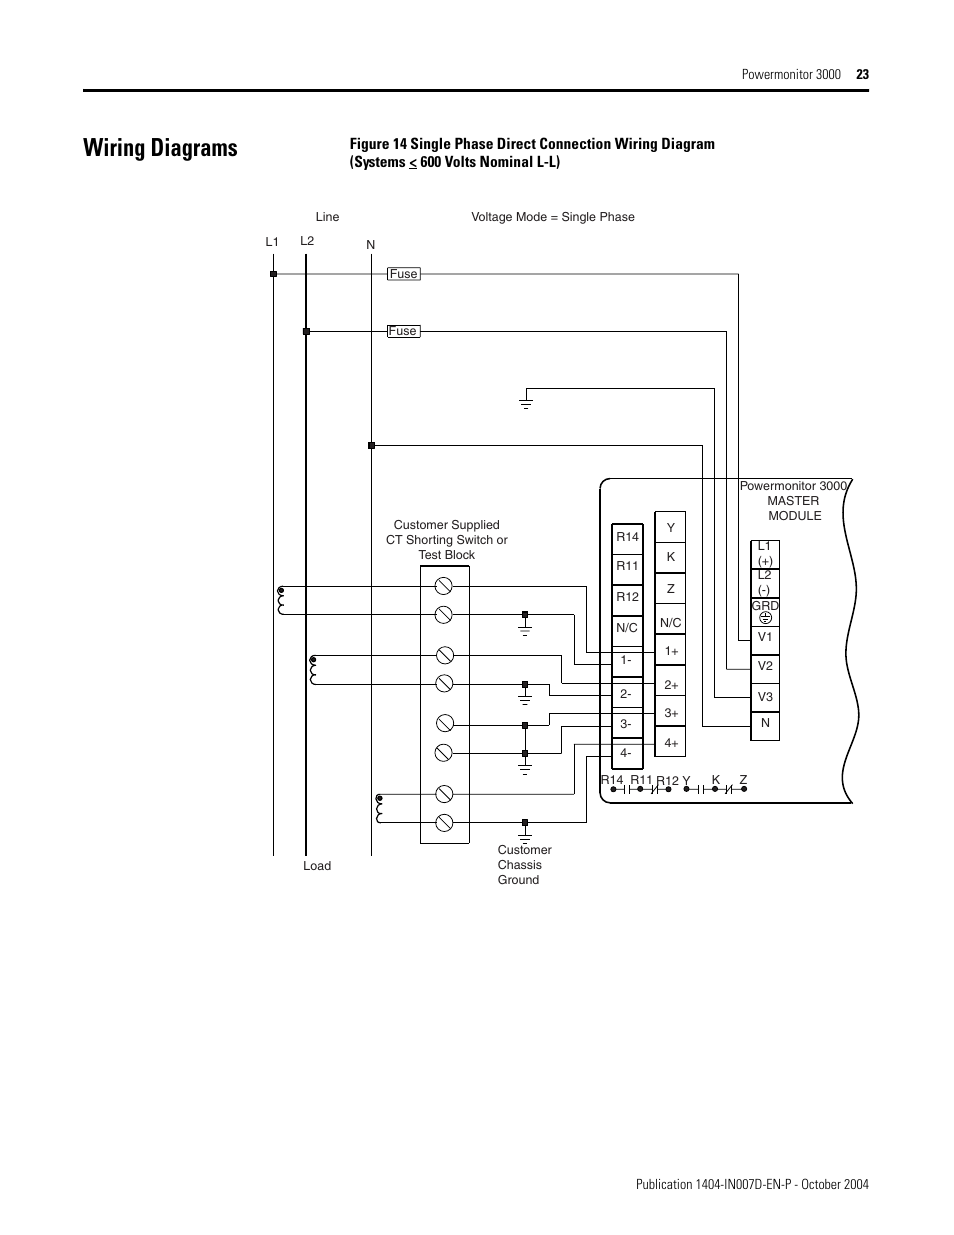 Wiring diagrams | Rockwell Automation 1404-M4_M5_M6_M8 Powermonitor 3000  Installation Instructions, PRIOR to Firmware rev. 3.0 User Manual | Page 23  / 66